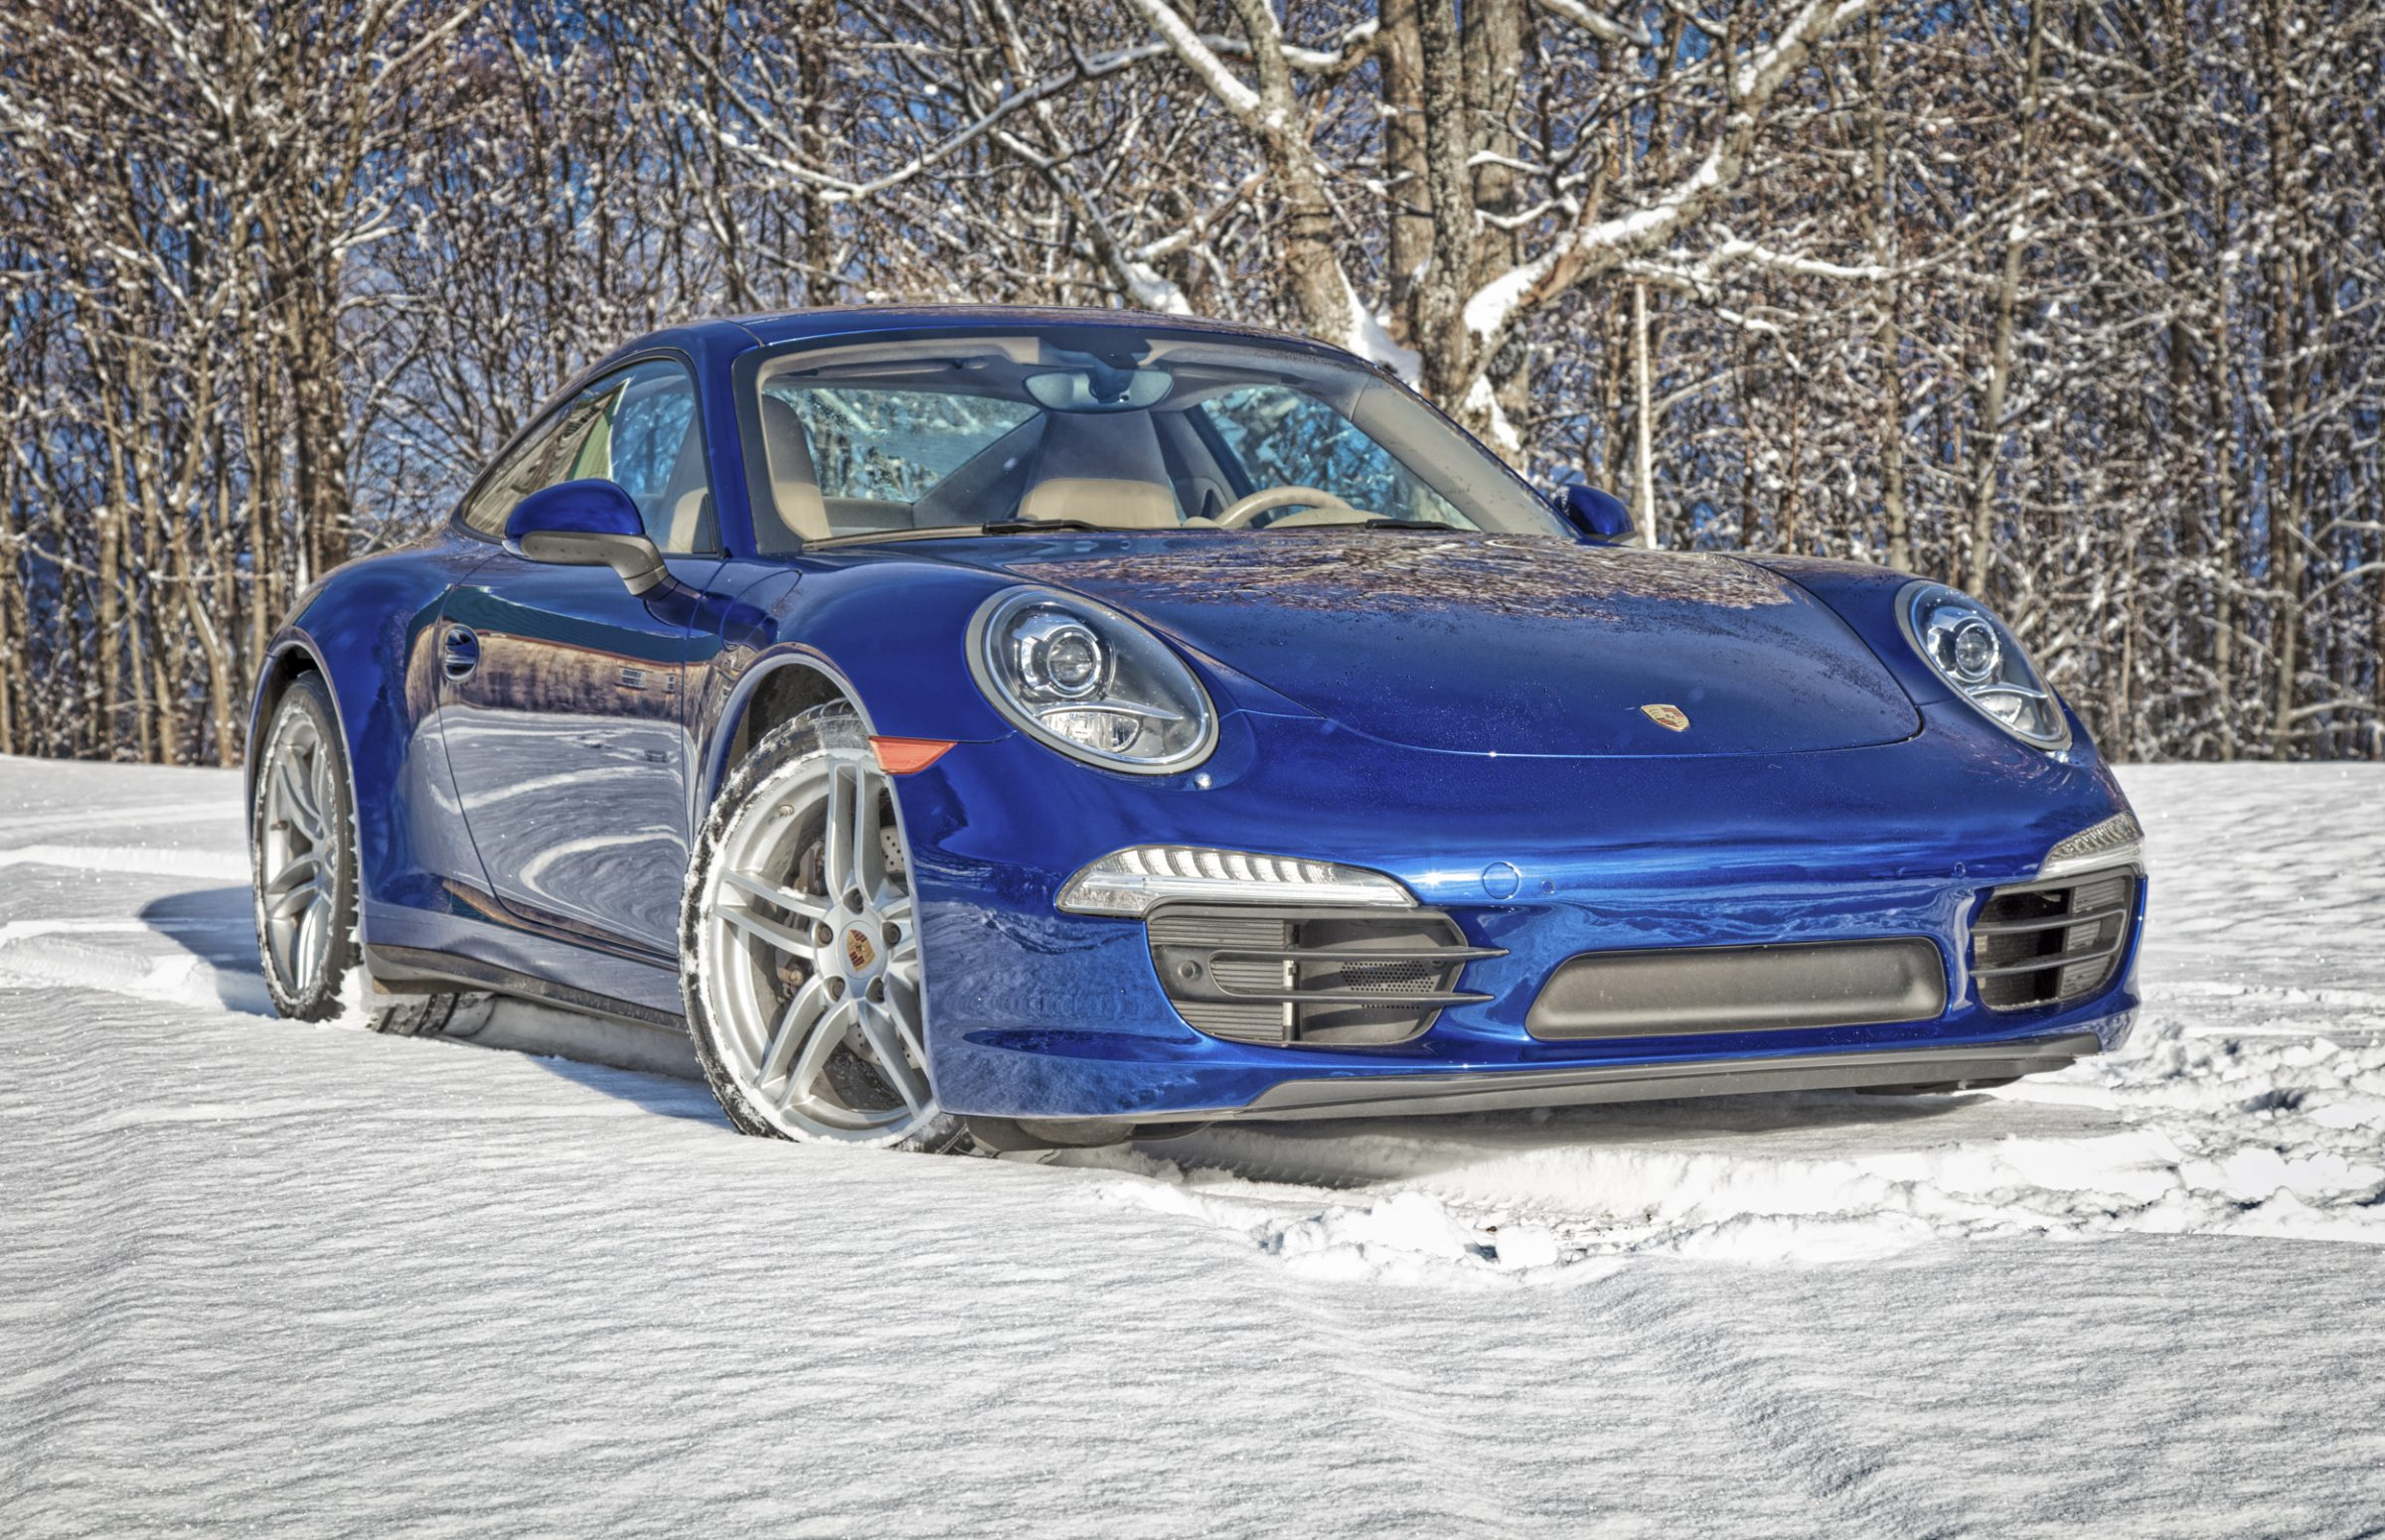 Herb Chambers Porsche >> Winter Warmer February 24 2019 At Herb Chambers Porsche In Boston